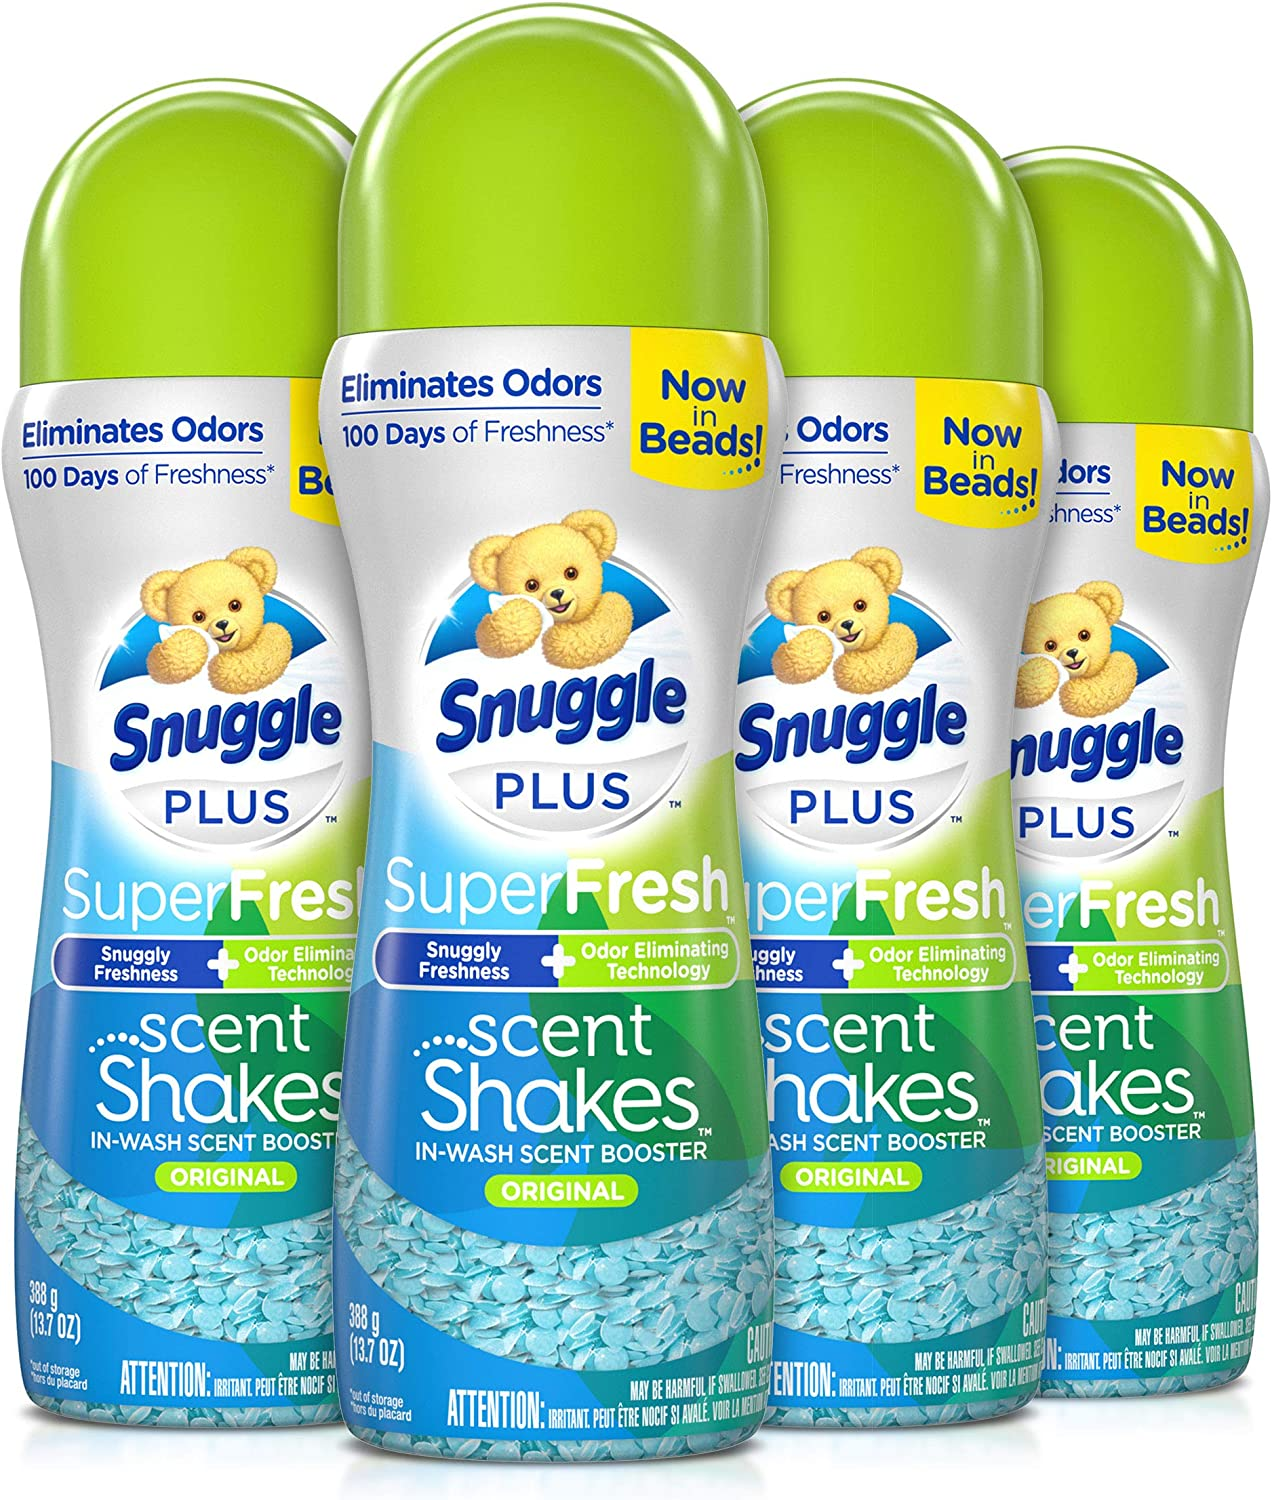 Snuggle Scent Shakes in-Wash Scent Booster Beads, SuperFresh Original, 13.7 Ounce (Pack of 4)